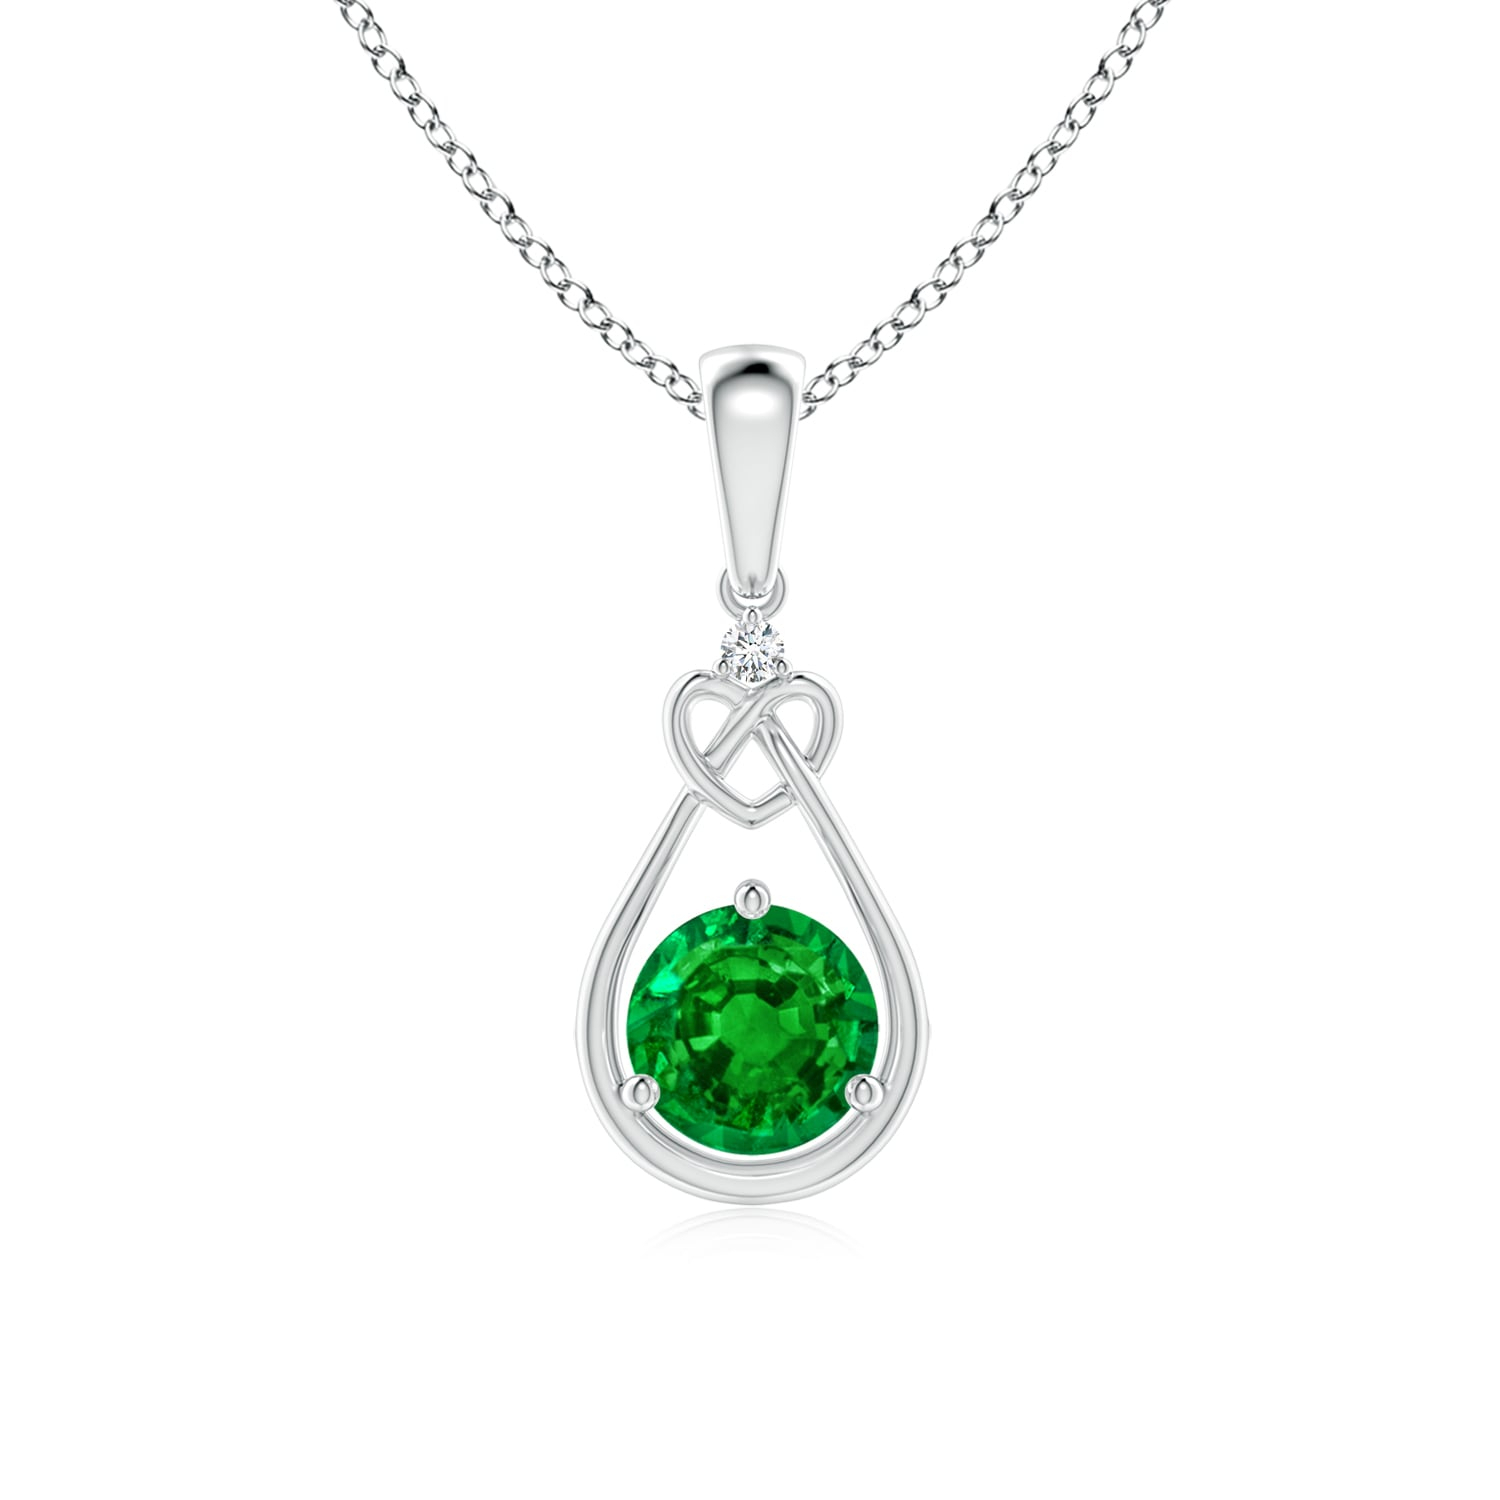 Emerald Knotted Heart Pendant With Diamond With Regard To Current Shimmering Knot Pendant Necklaces (Gallery 20 of 25)